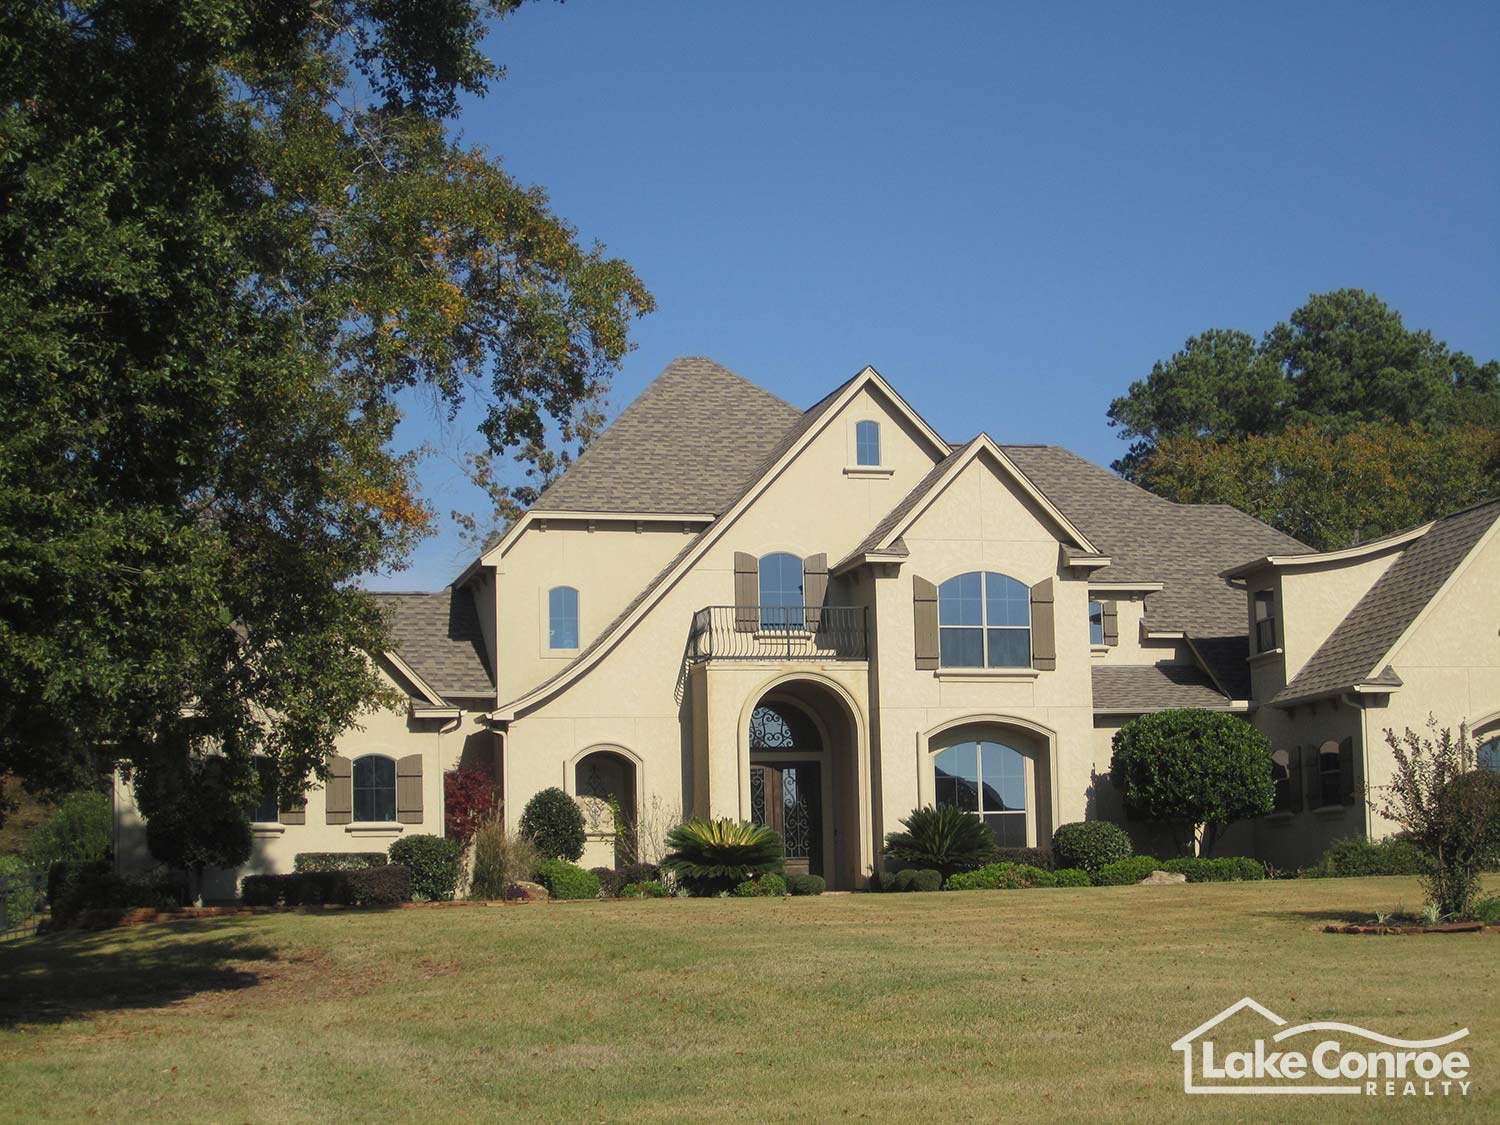 Waterfront Homes For Sale In Walden On Lake Conroe